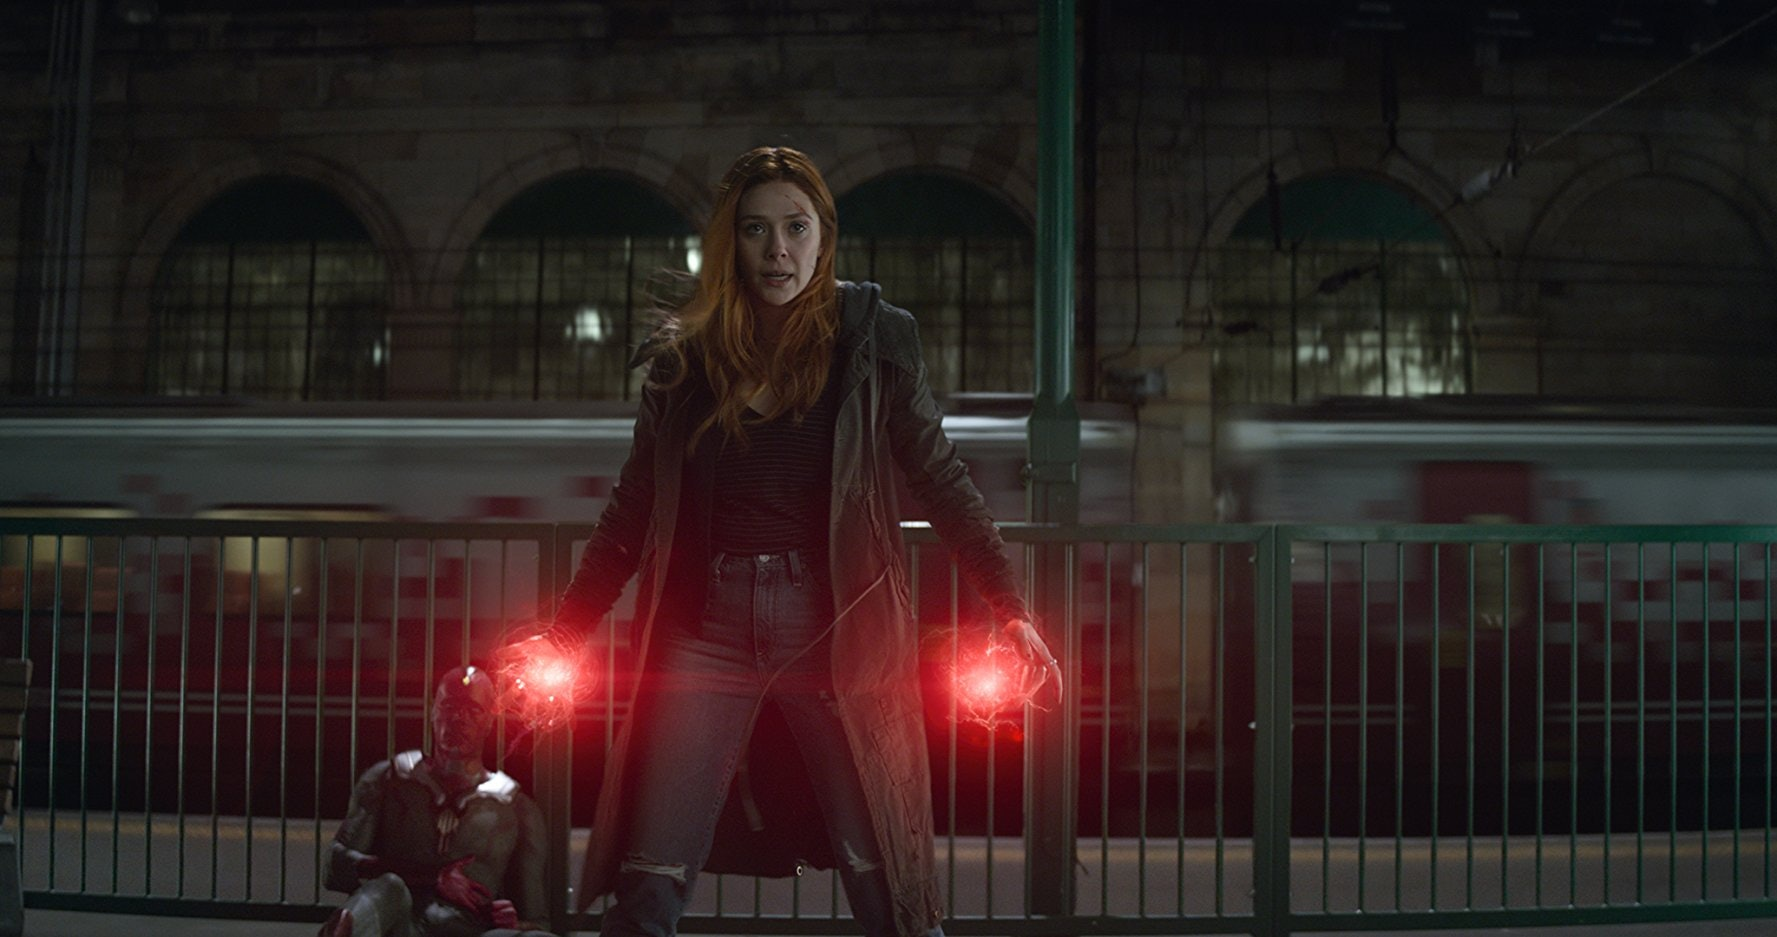 Wanda (Olsen) prepares to fight Proxima Midnight (Carrie Coon) in 'Avengers: Endgame.'